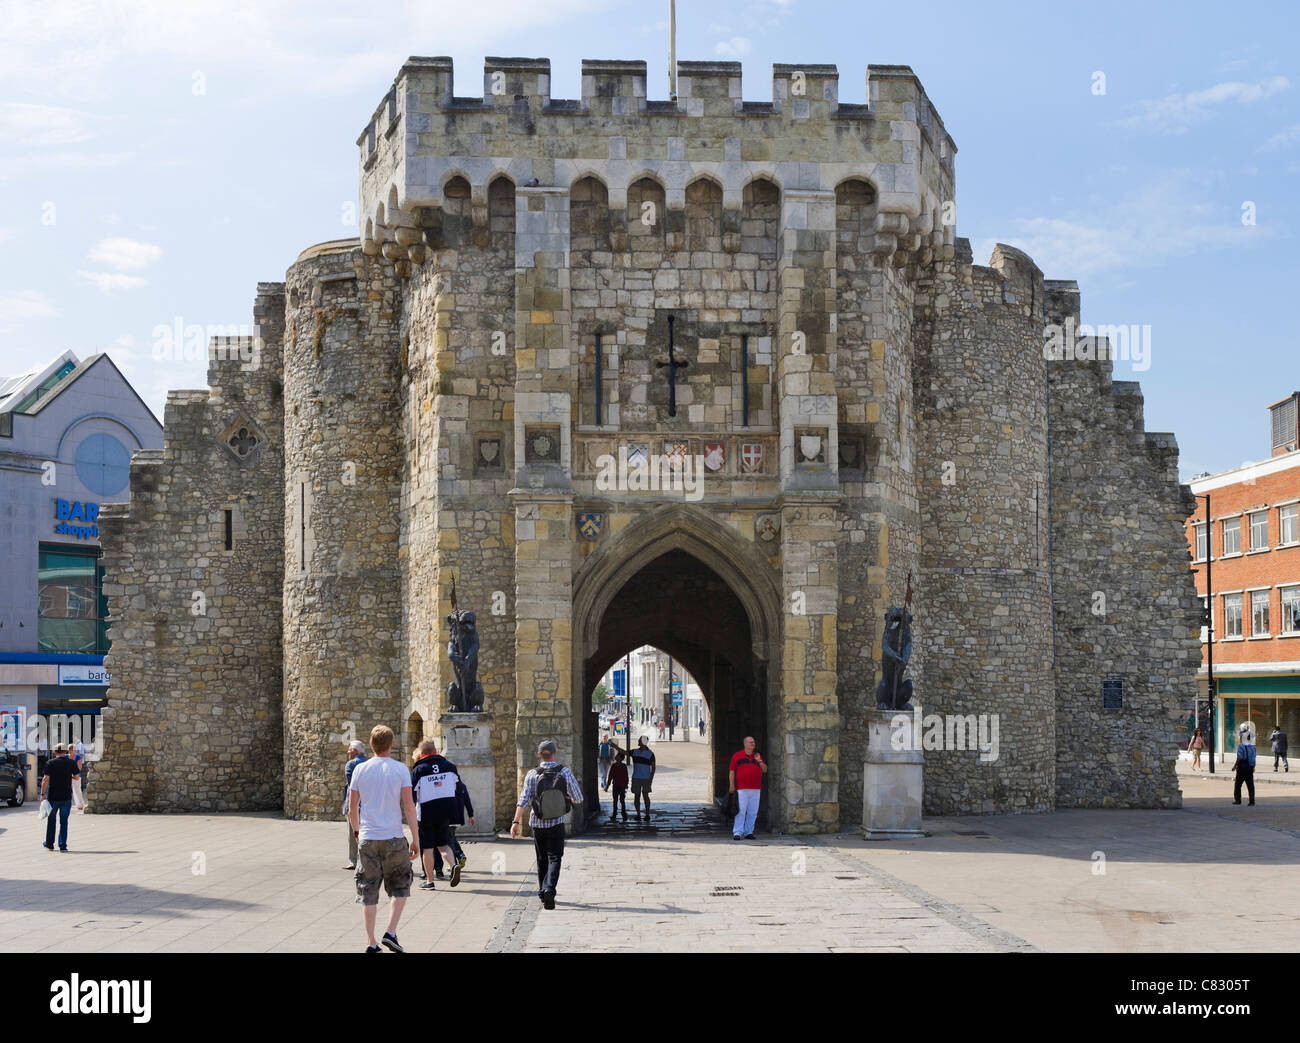 The Bargate medieval gateway in the city centre, Southampton, Hampshire, England, UK - Stock Image